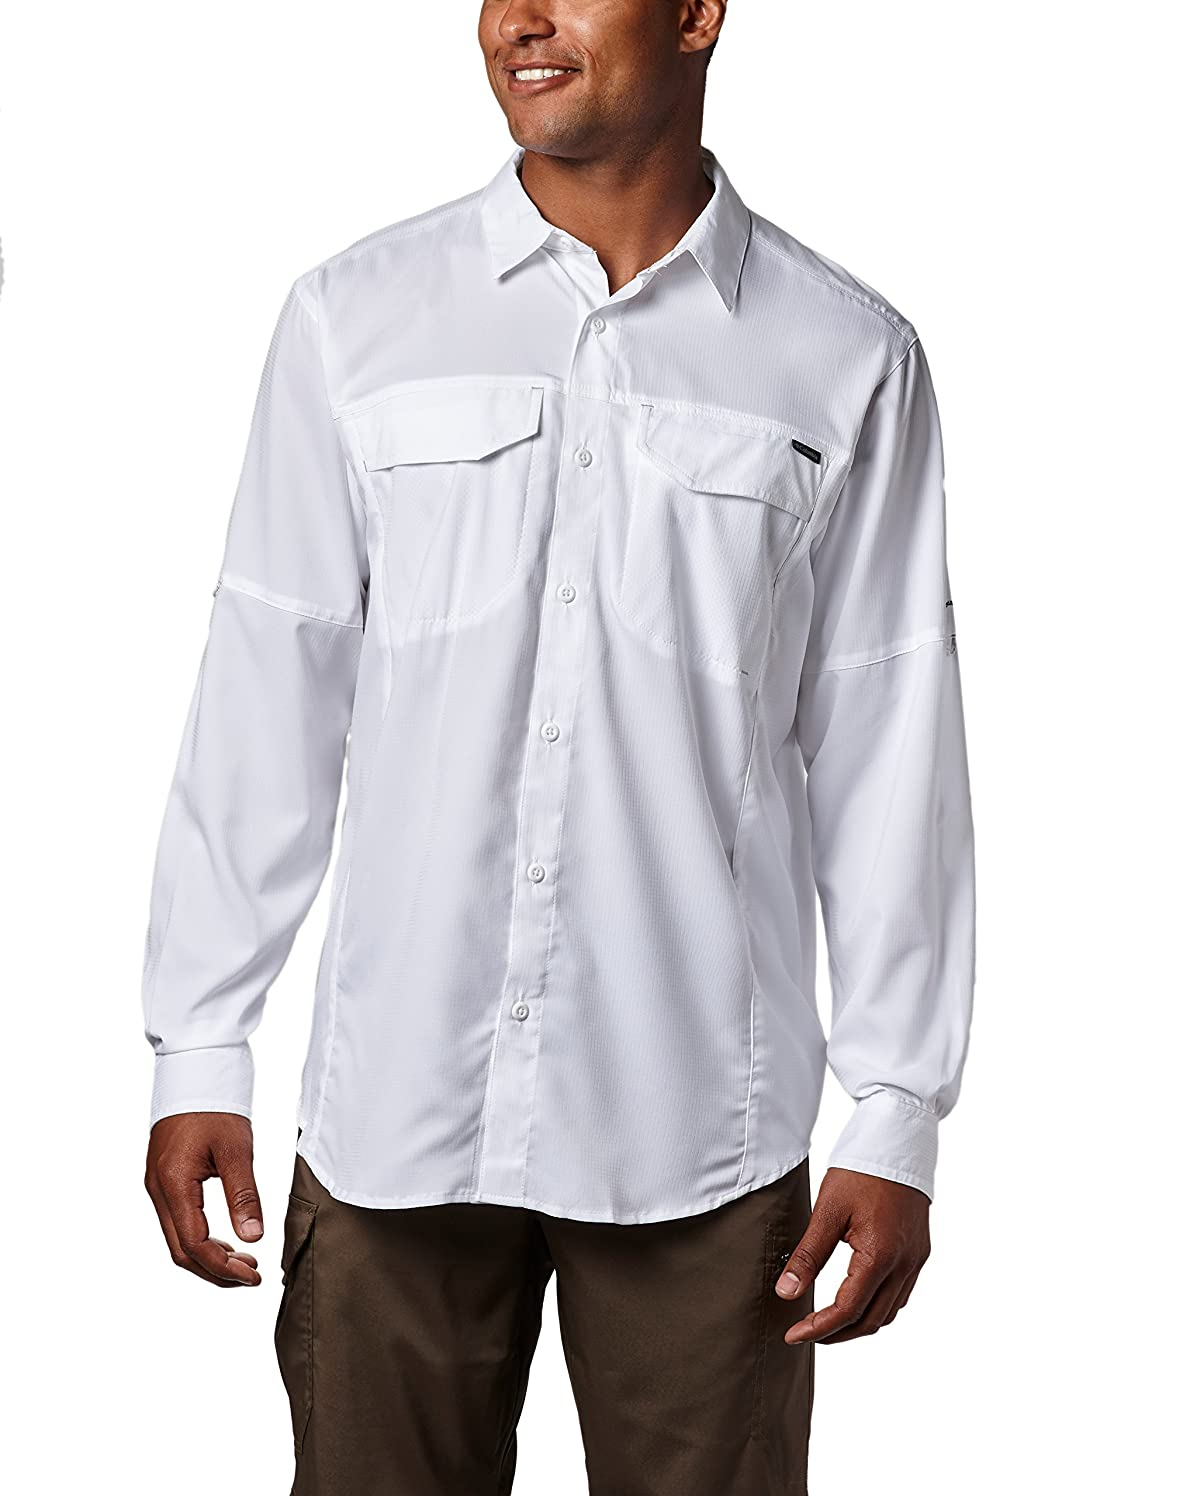 Columbia Men's Silver Ridge Lite Long Sleeve Shirt, UV Sun Protection, Moisture Wicking Fabric